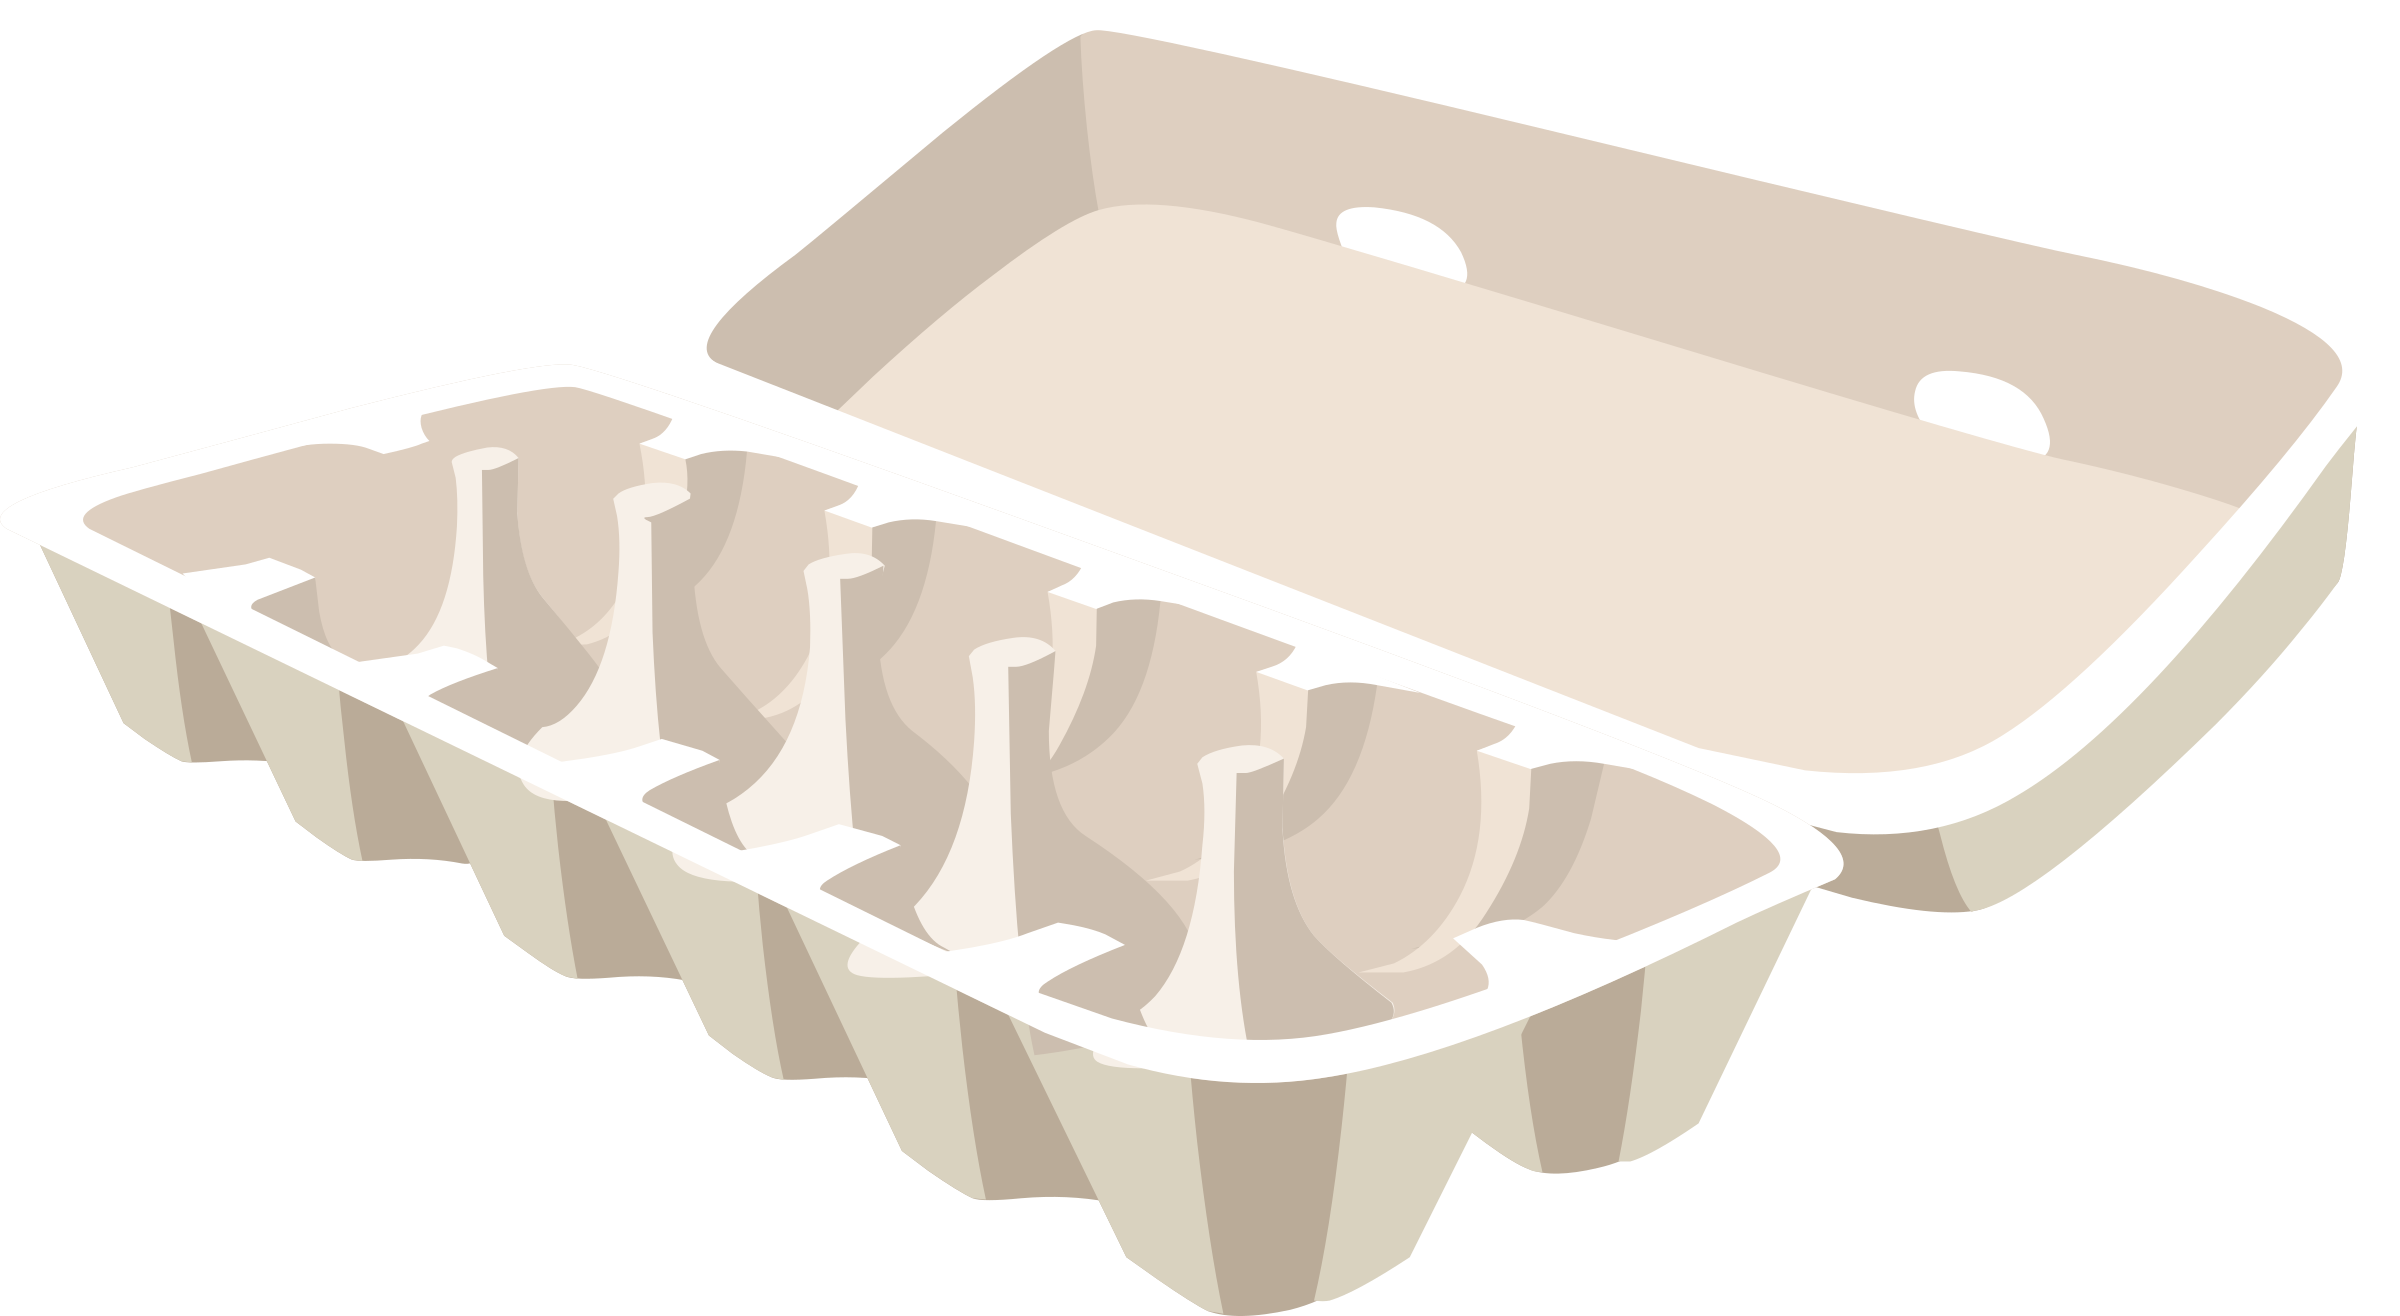 Glitch clipart kitchen Carton (PNG) Misc BIG Egg